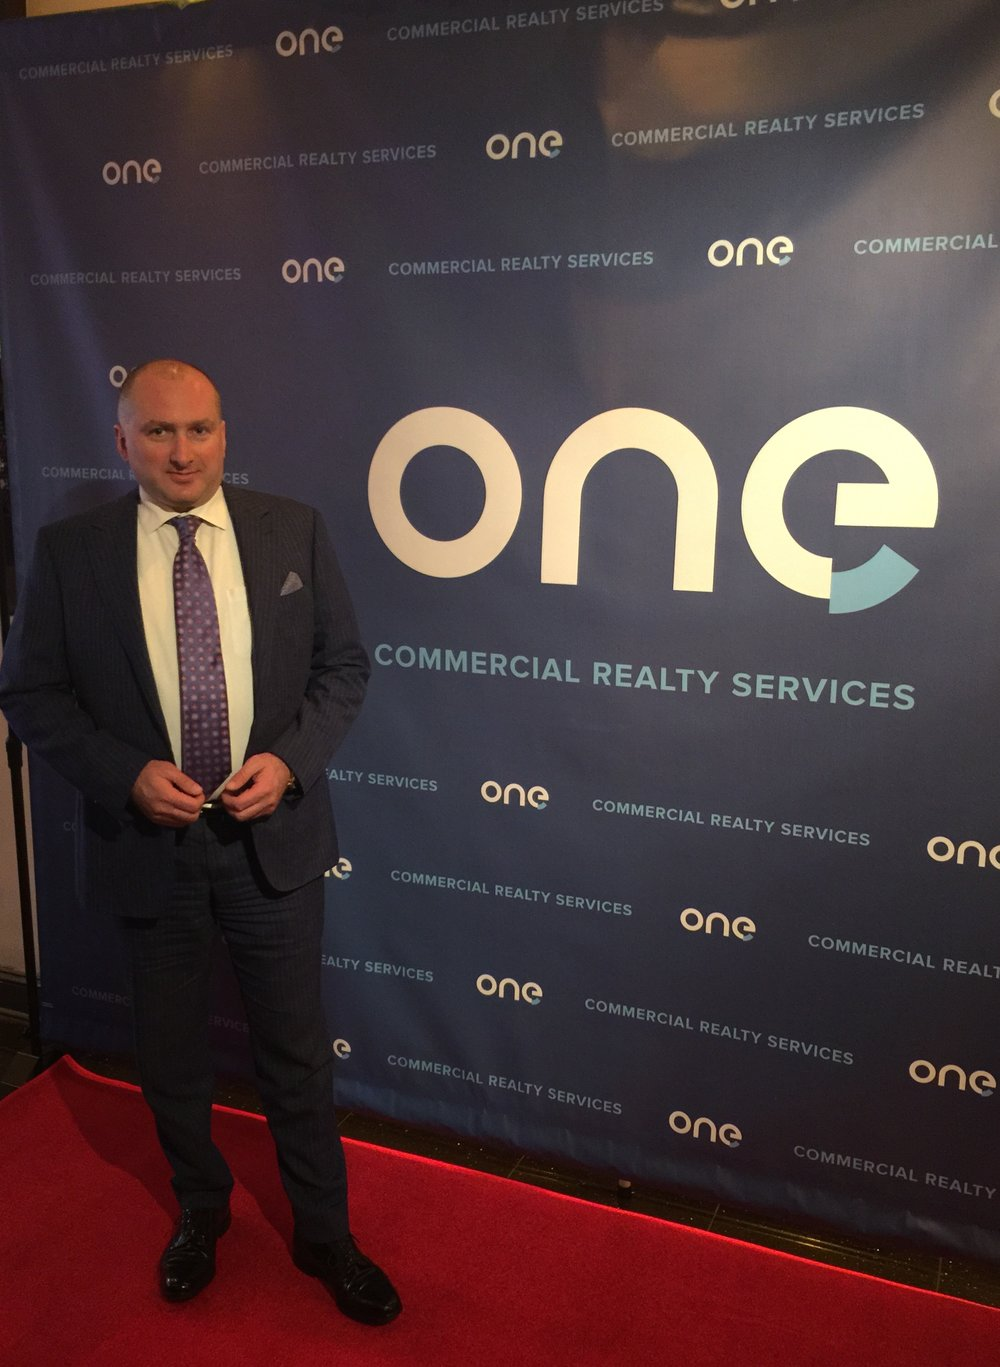 David Chase at an event celebrating the launch of ONE Commercial Realty Services